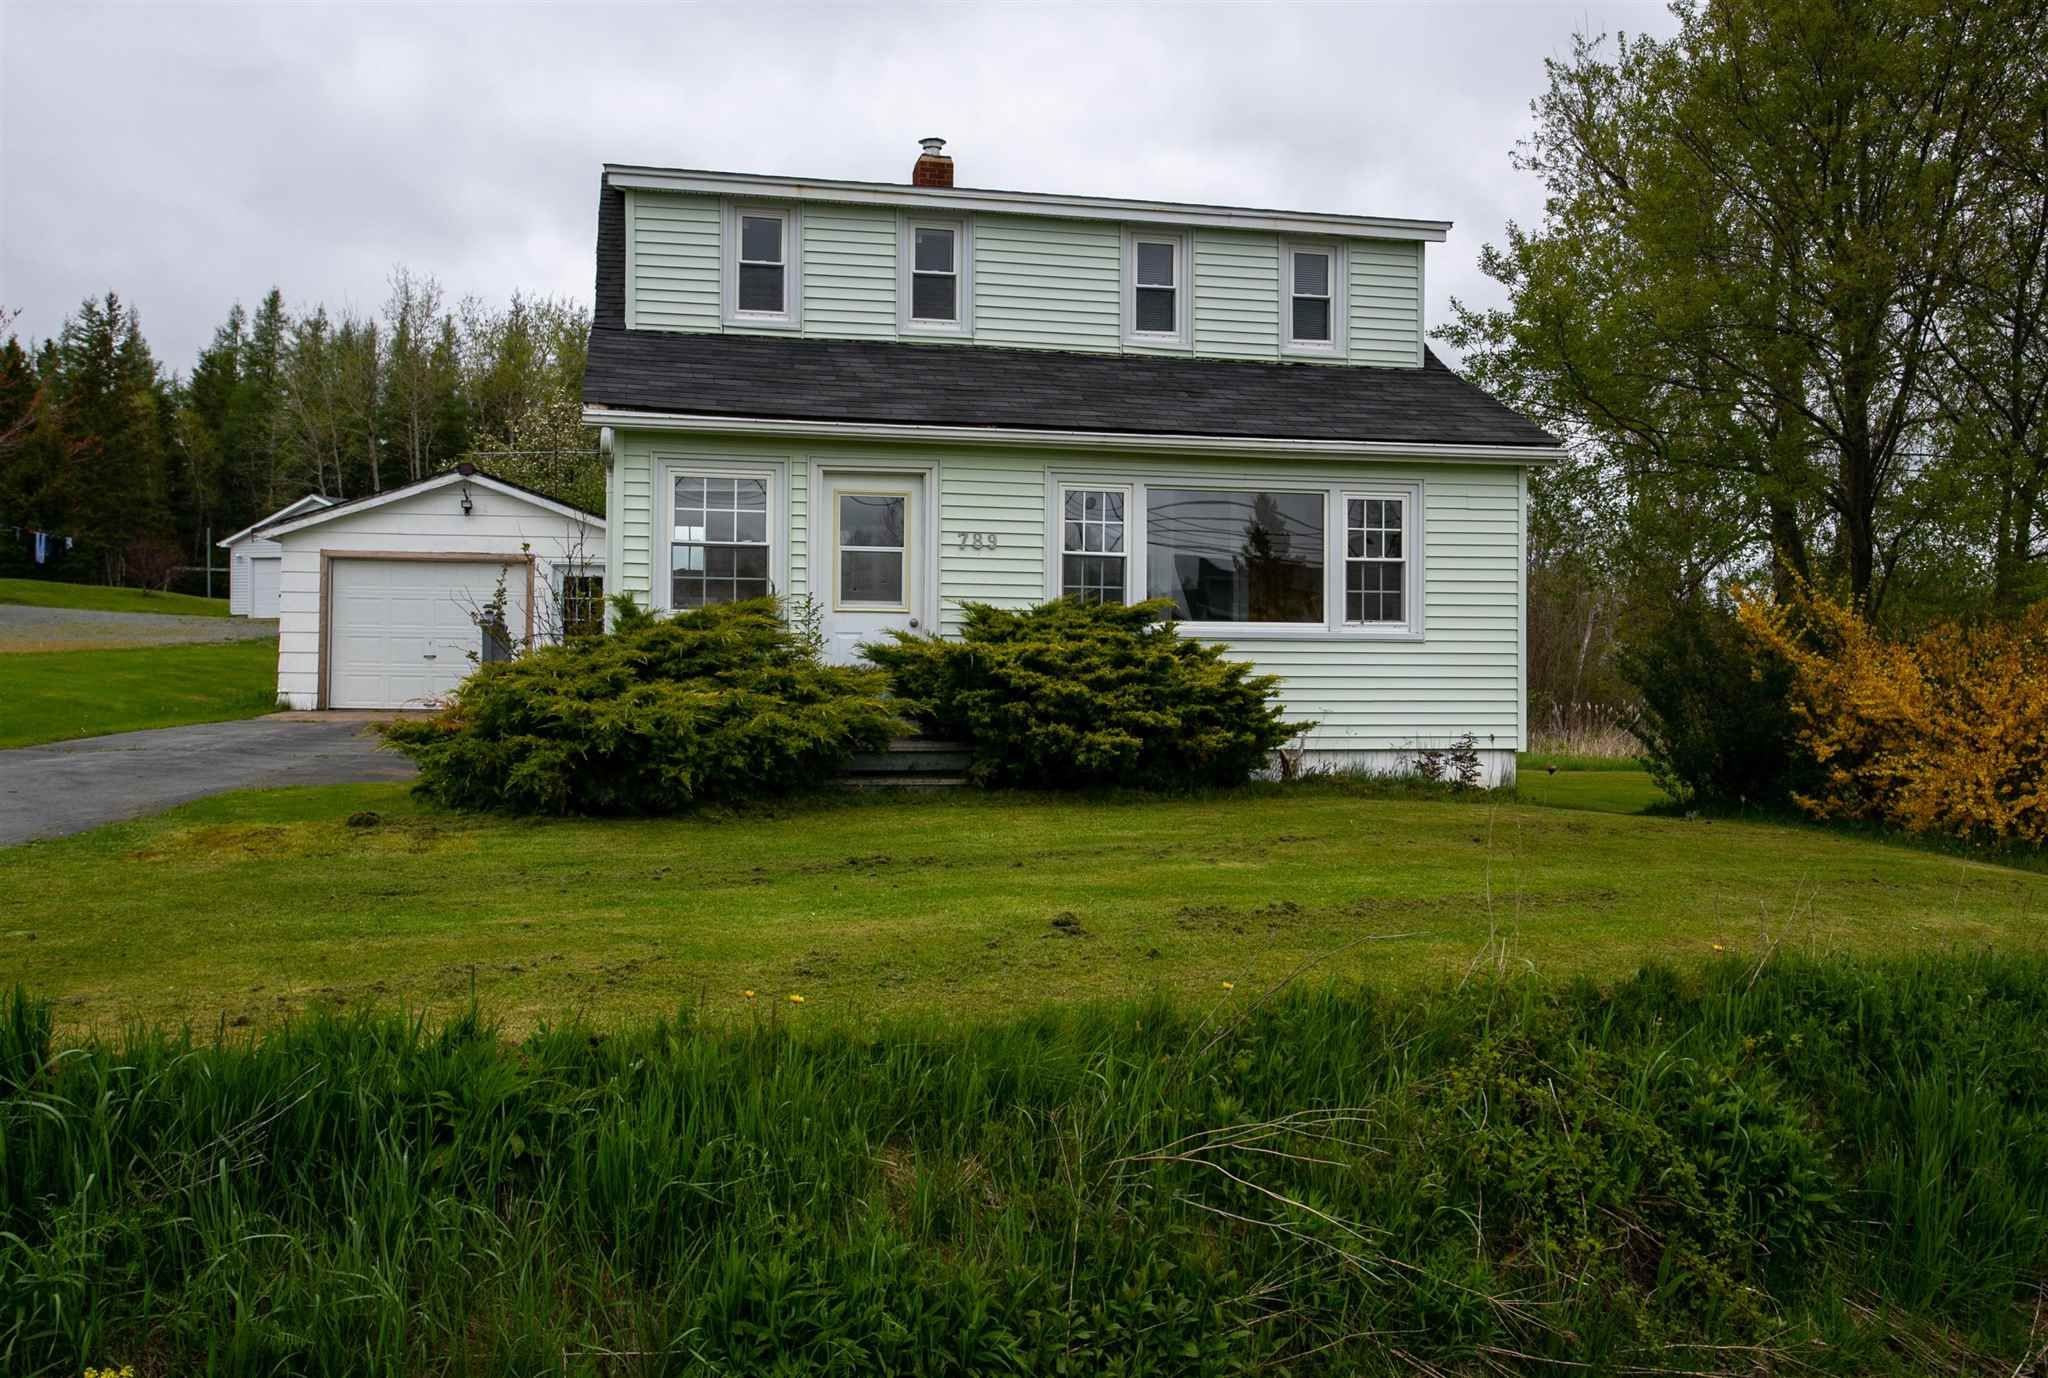 Main Photo: 789 277 Highway in Dutch Settlement: 105-East Hants/Colchester West Residential for sale (Halifax-Dartmouth)  : MLS®# 202112996